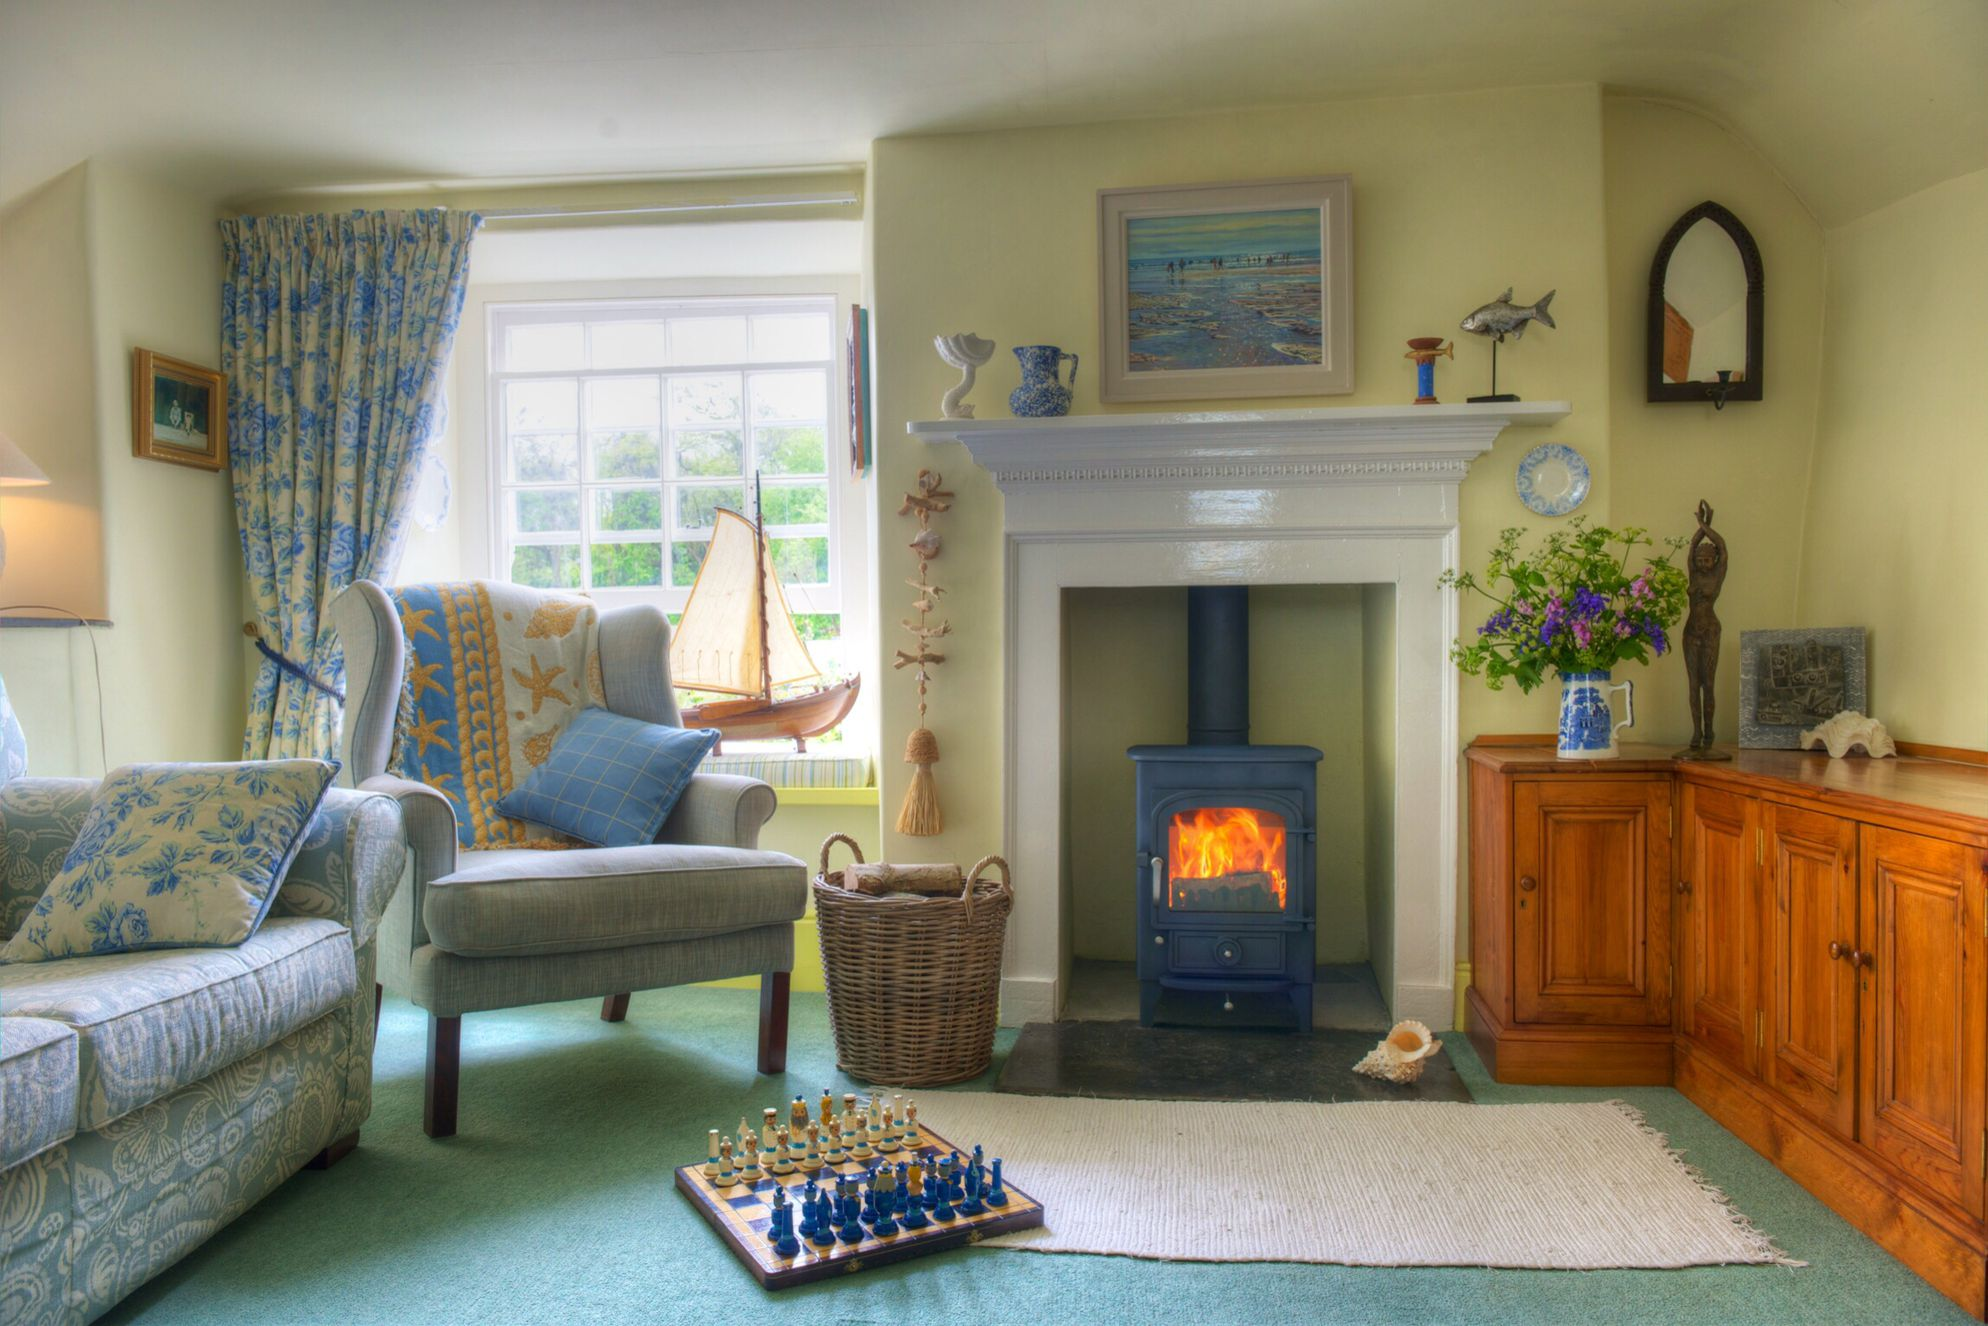 School Cottage Cornwall sitting room with log burner and traditional features